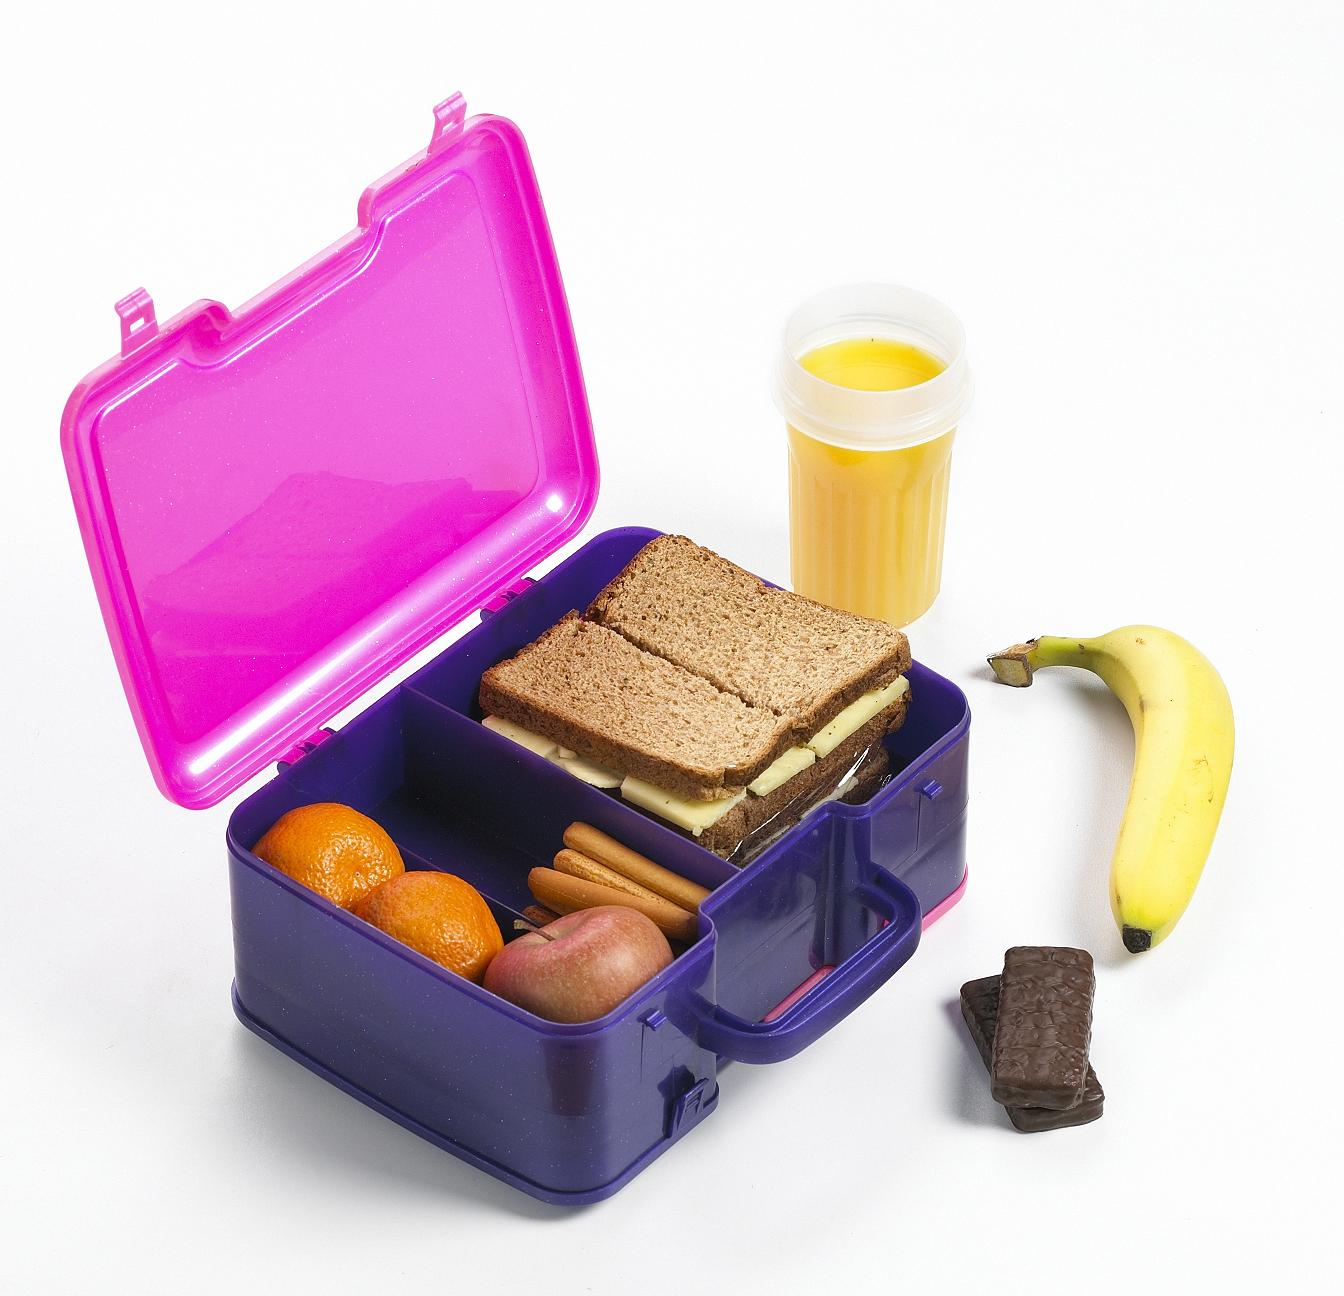 Clipart put lunch box away png download Clipart put lunch box away - Clip Art Library png download